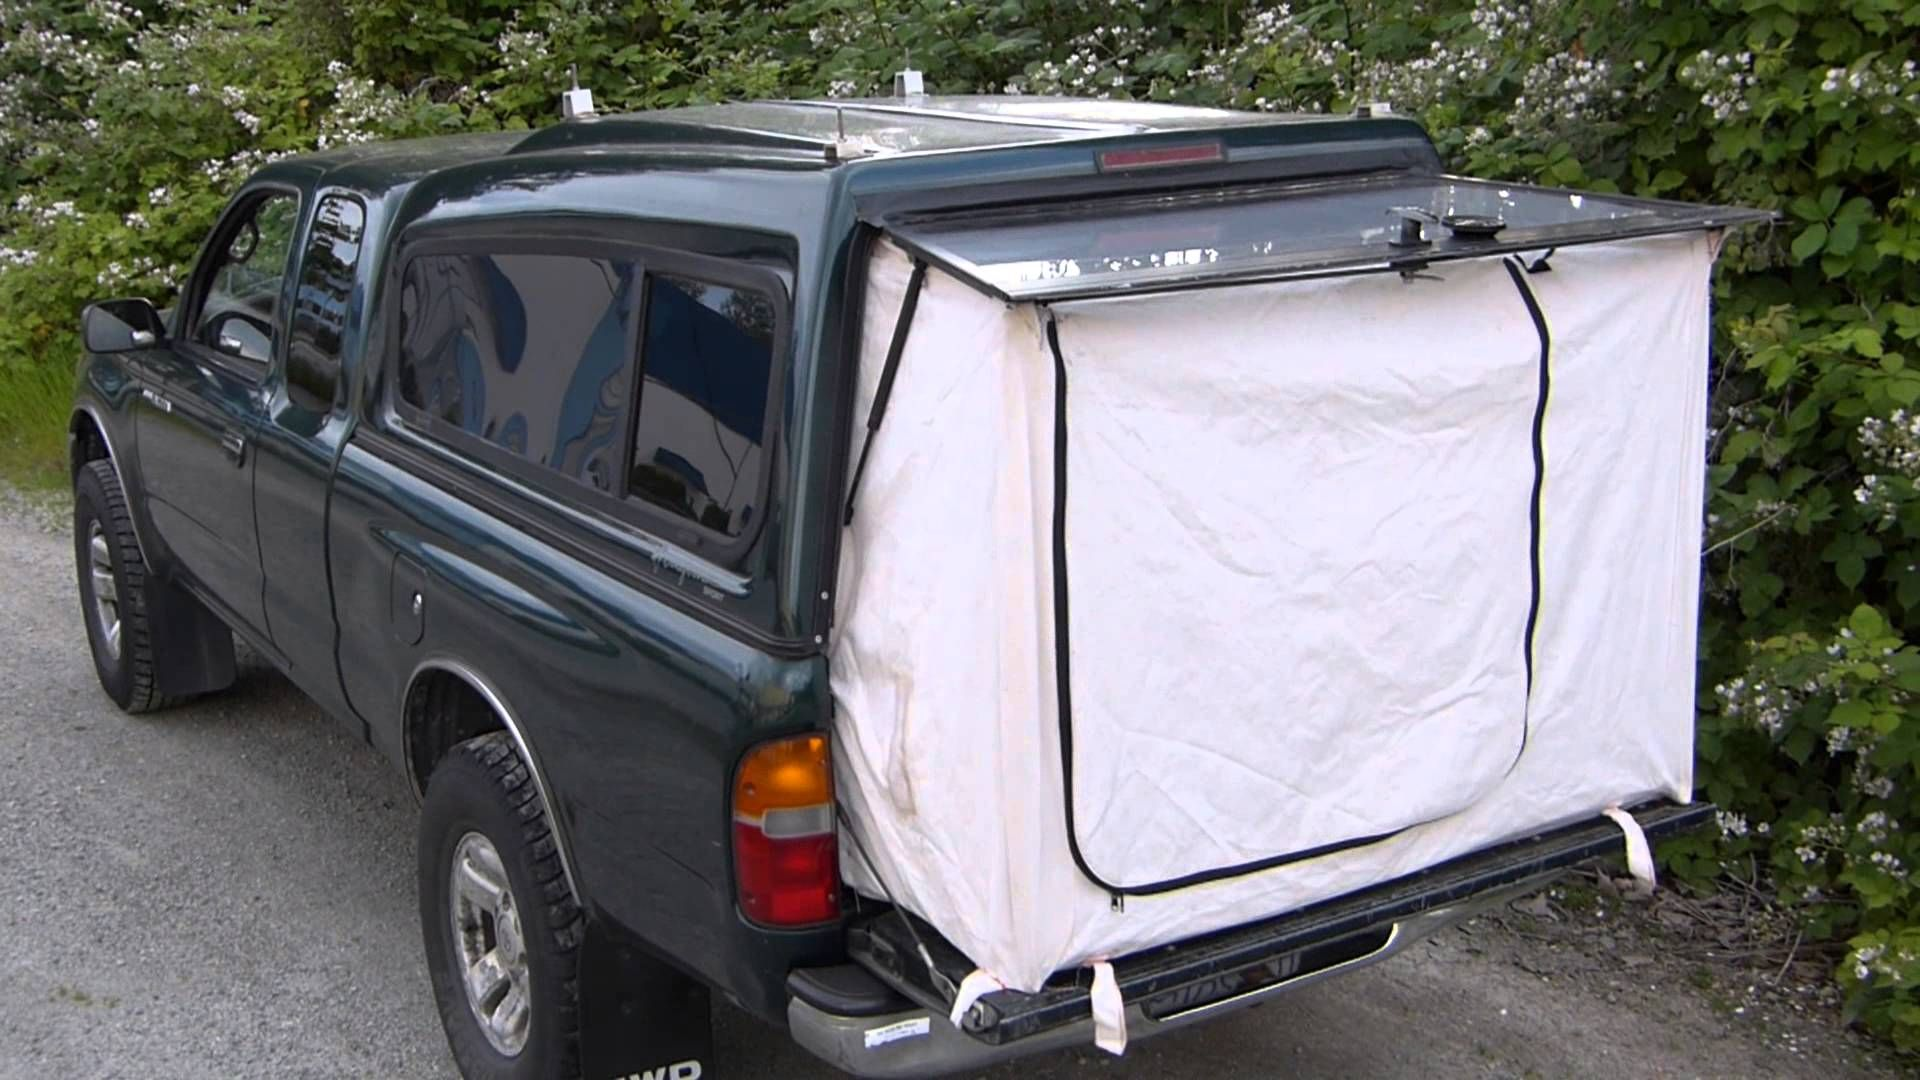 Tent End For A Pickup Truck Camping Truck Topper